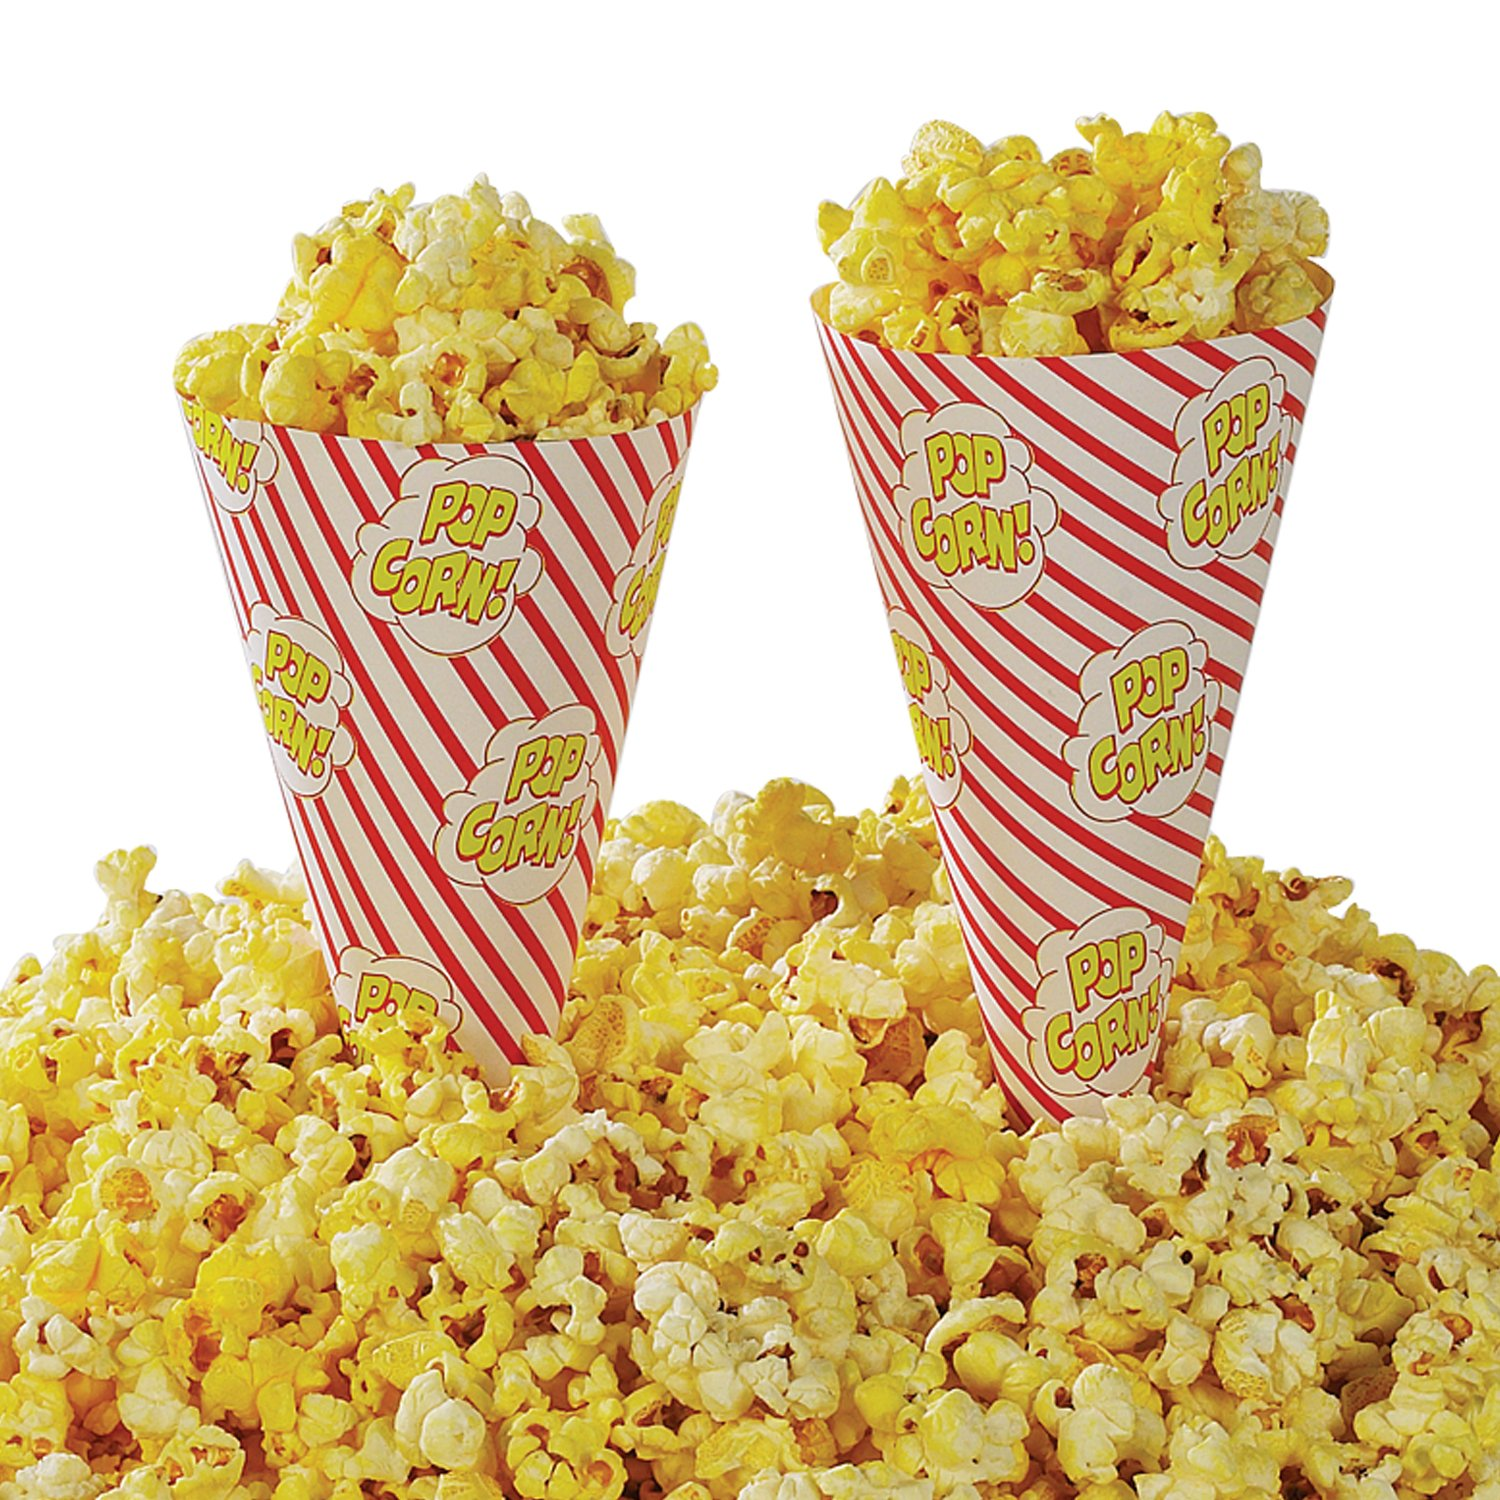 Gold Medal Cone A Corn Popcorn Cup (2,500 ct.) - (Popcorn Packaging)